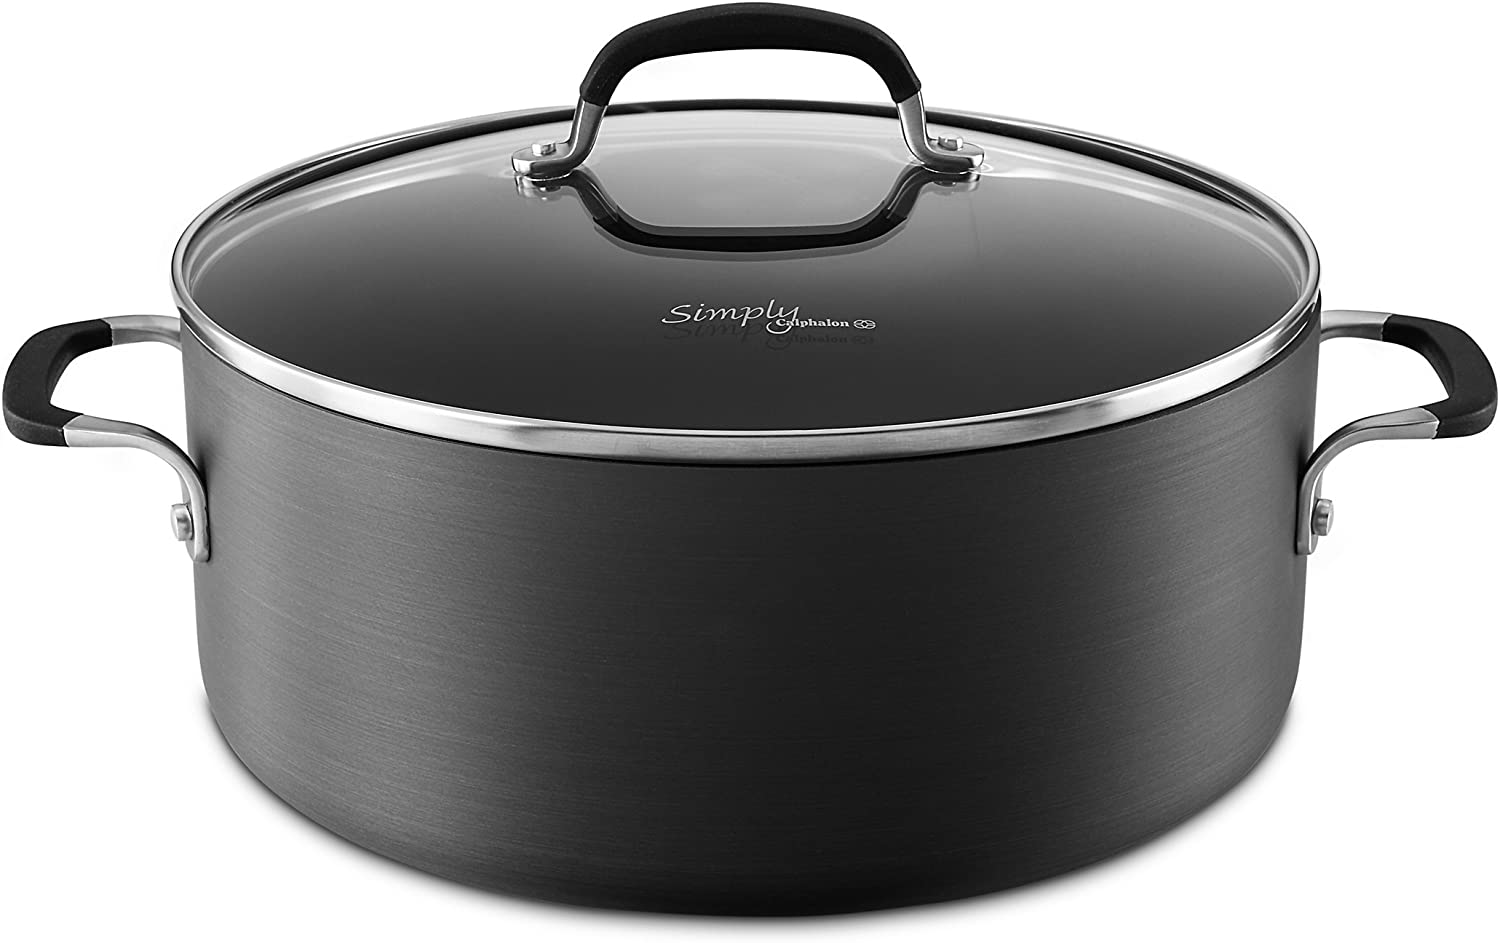 Simply Calphalon Nonstick 7-qt. Dutch Oven & Cover